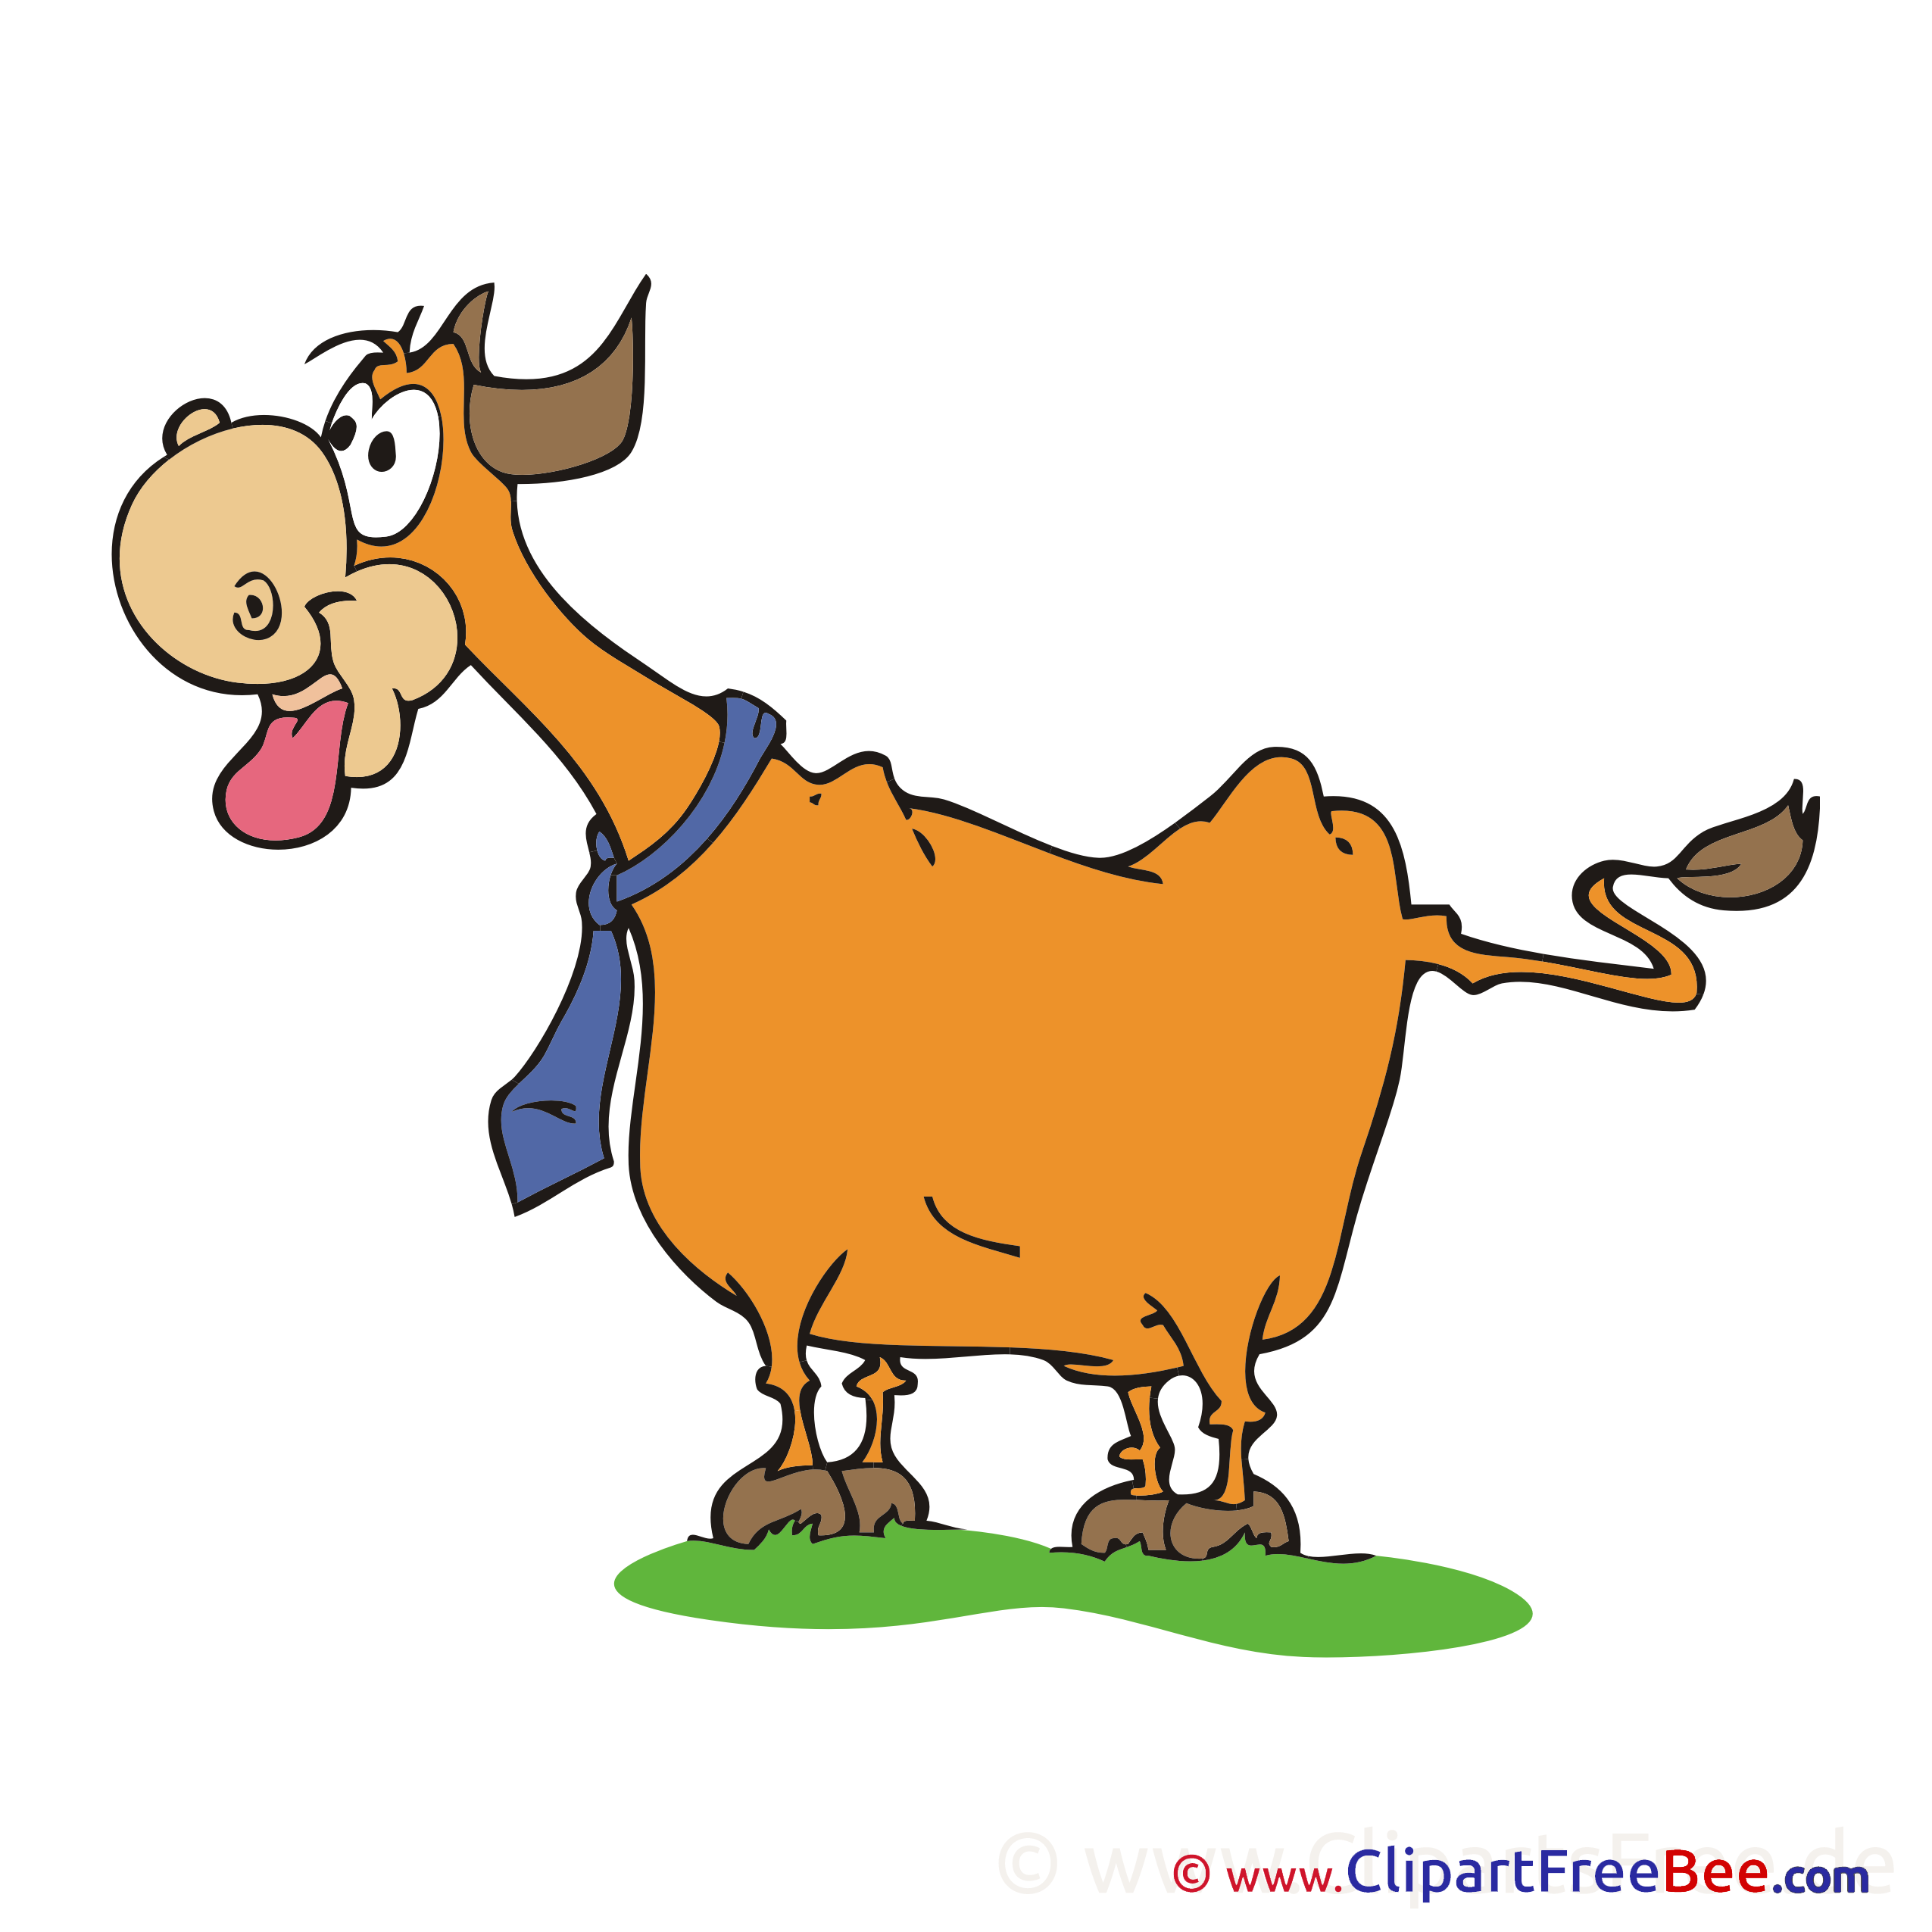 Cow Tie Clip Art download for free